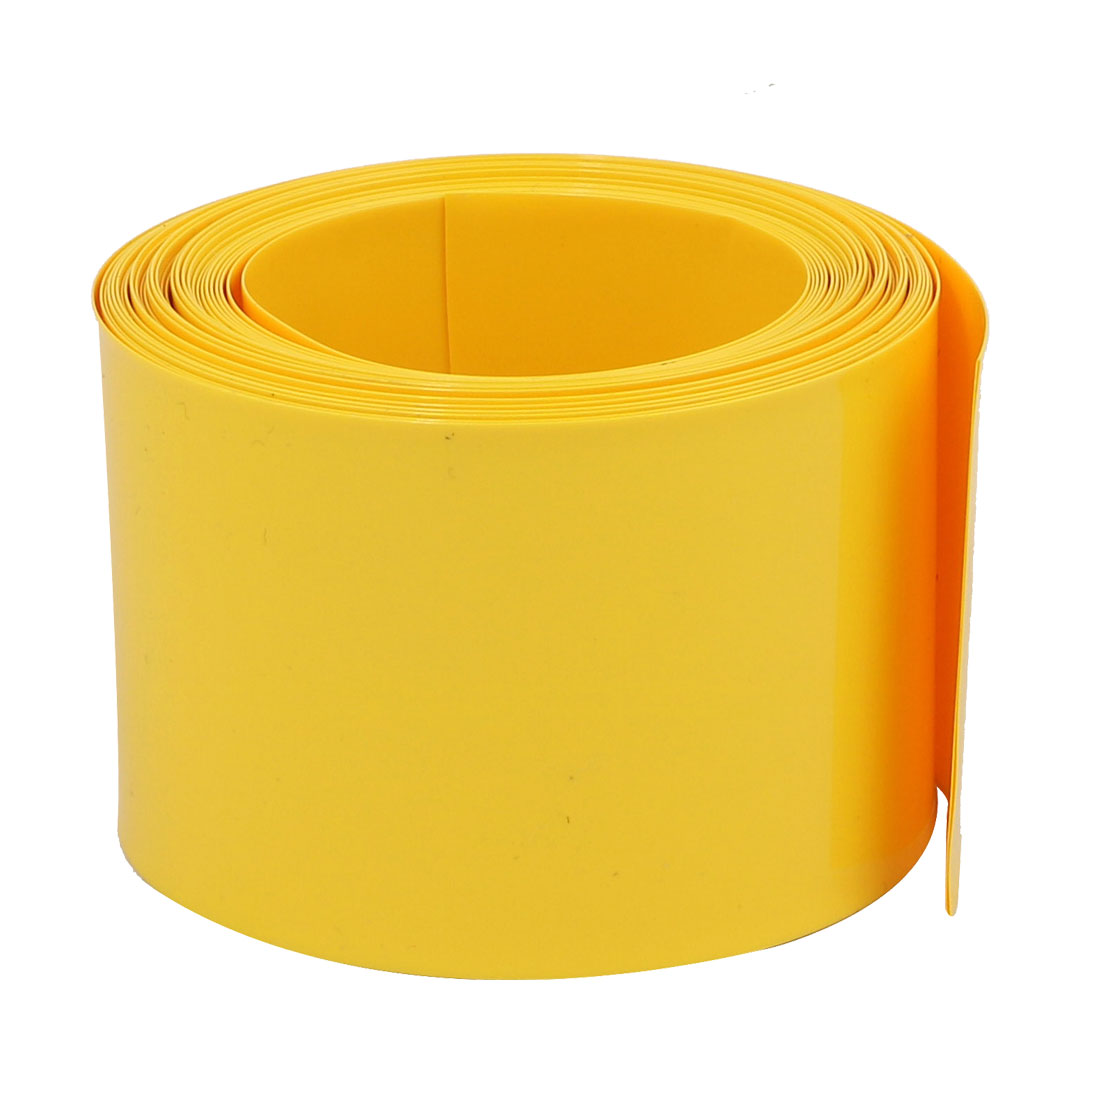 45mm Flat Width 5M Long PVC Heat Shrinkable Tube Yellow for Capacitive Battery